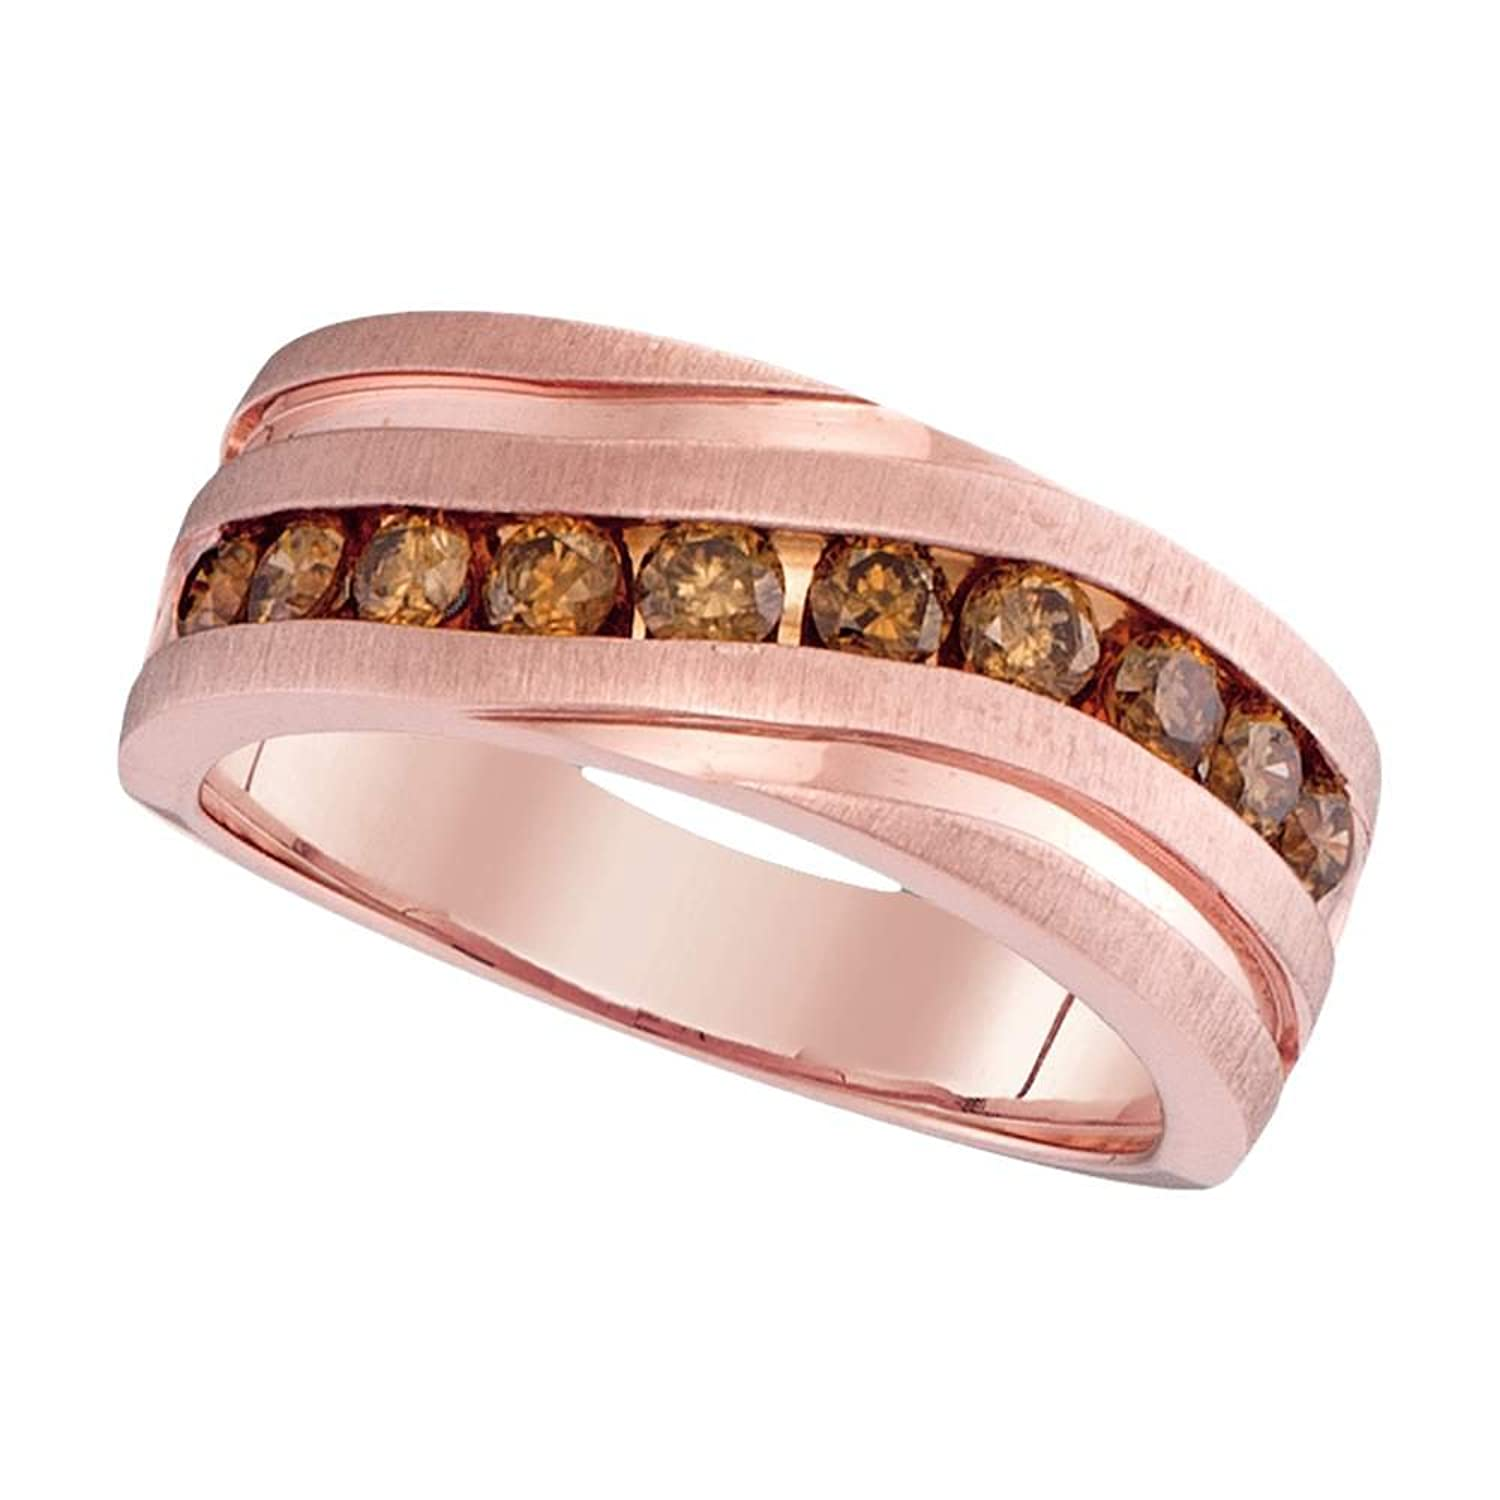 Mens Brown Diamond Wedding Band 10k Rose Gold Ring Chocolate Round ...